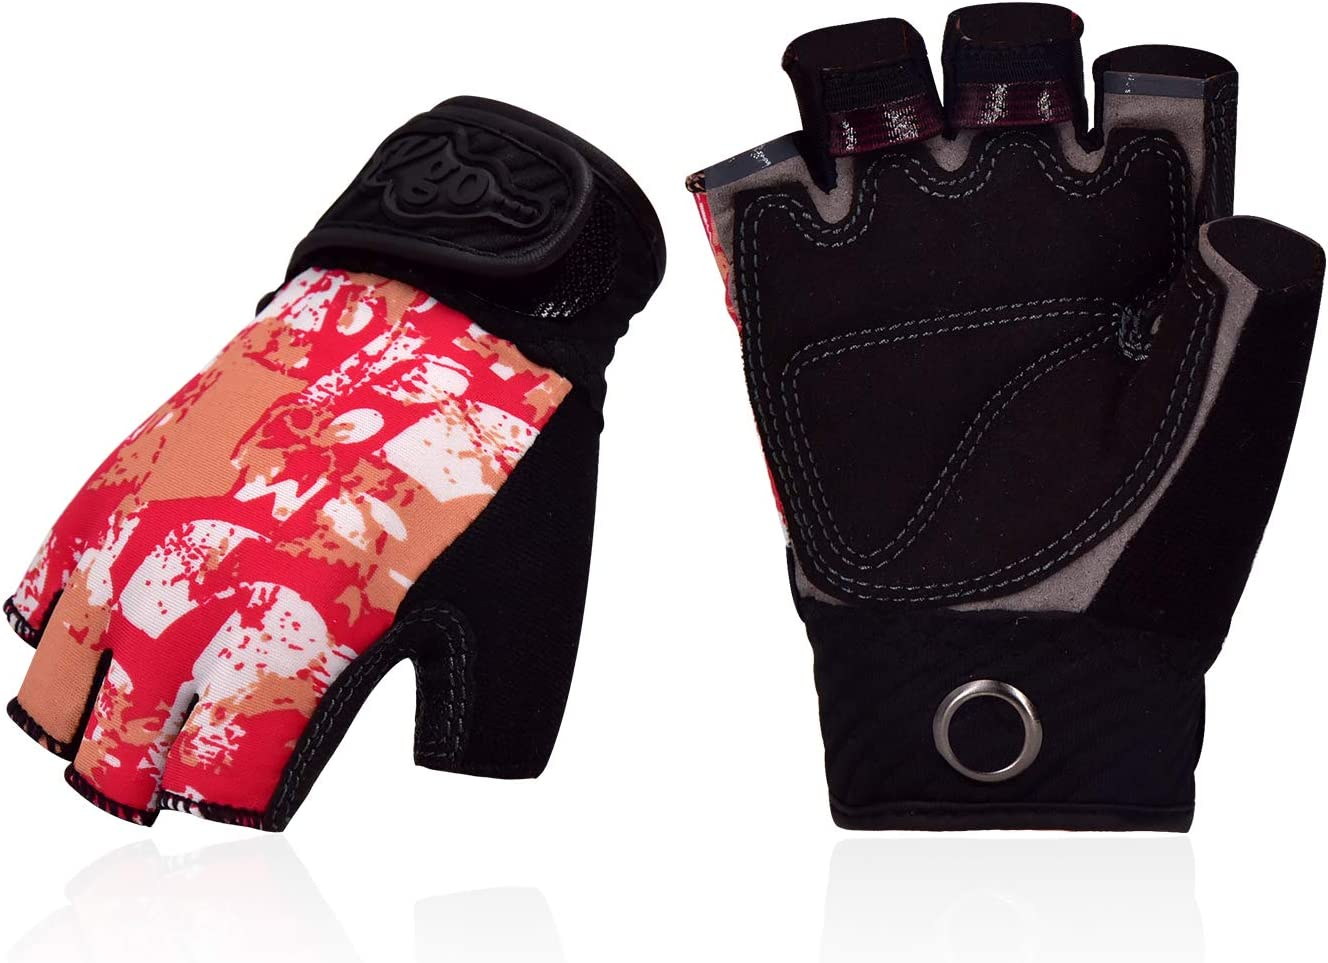 Vgo... Kids Half-Finger Breathable Climbing Gloves Outdoor Adventure Gloves with Anti-Slip Padding Palm(Red, L3100)